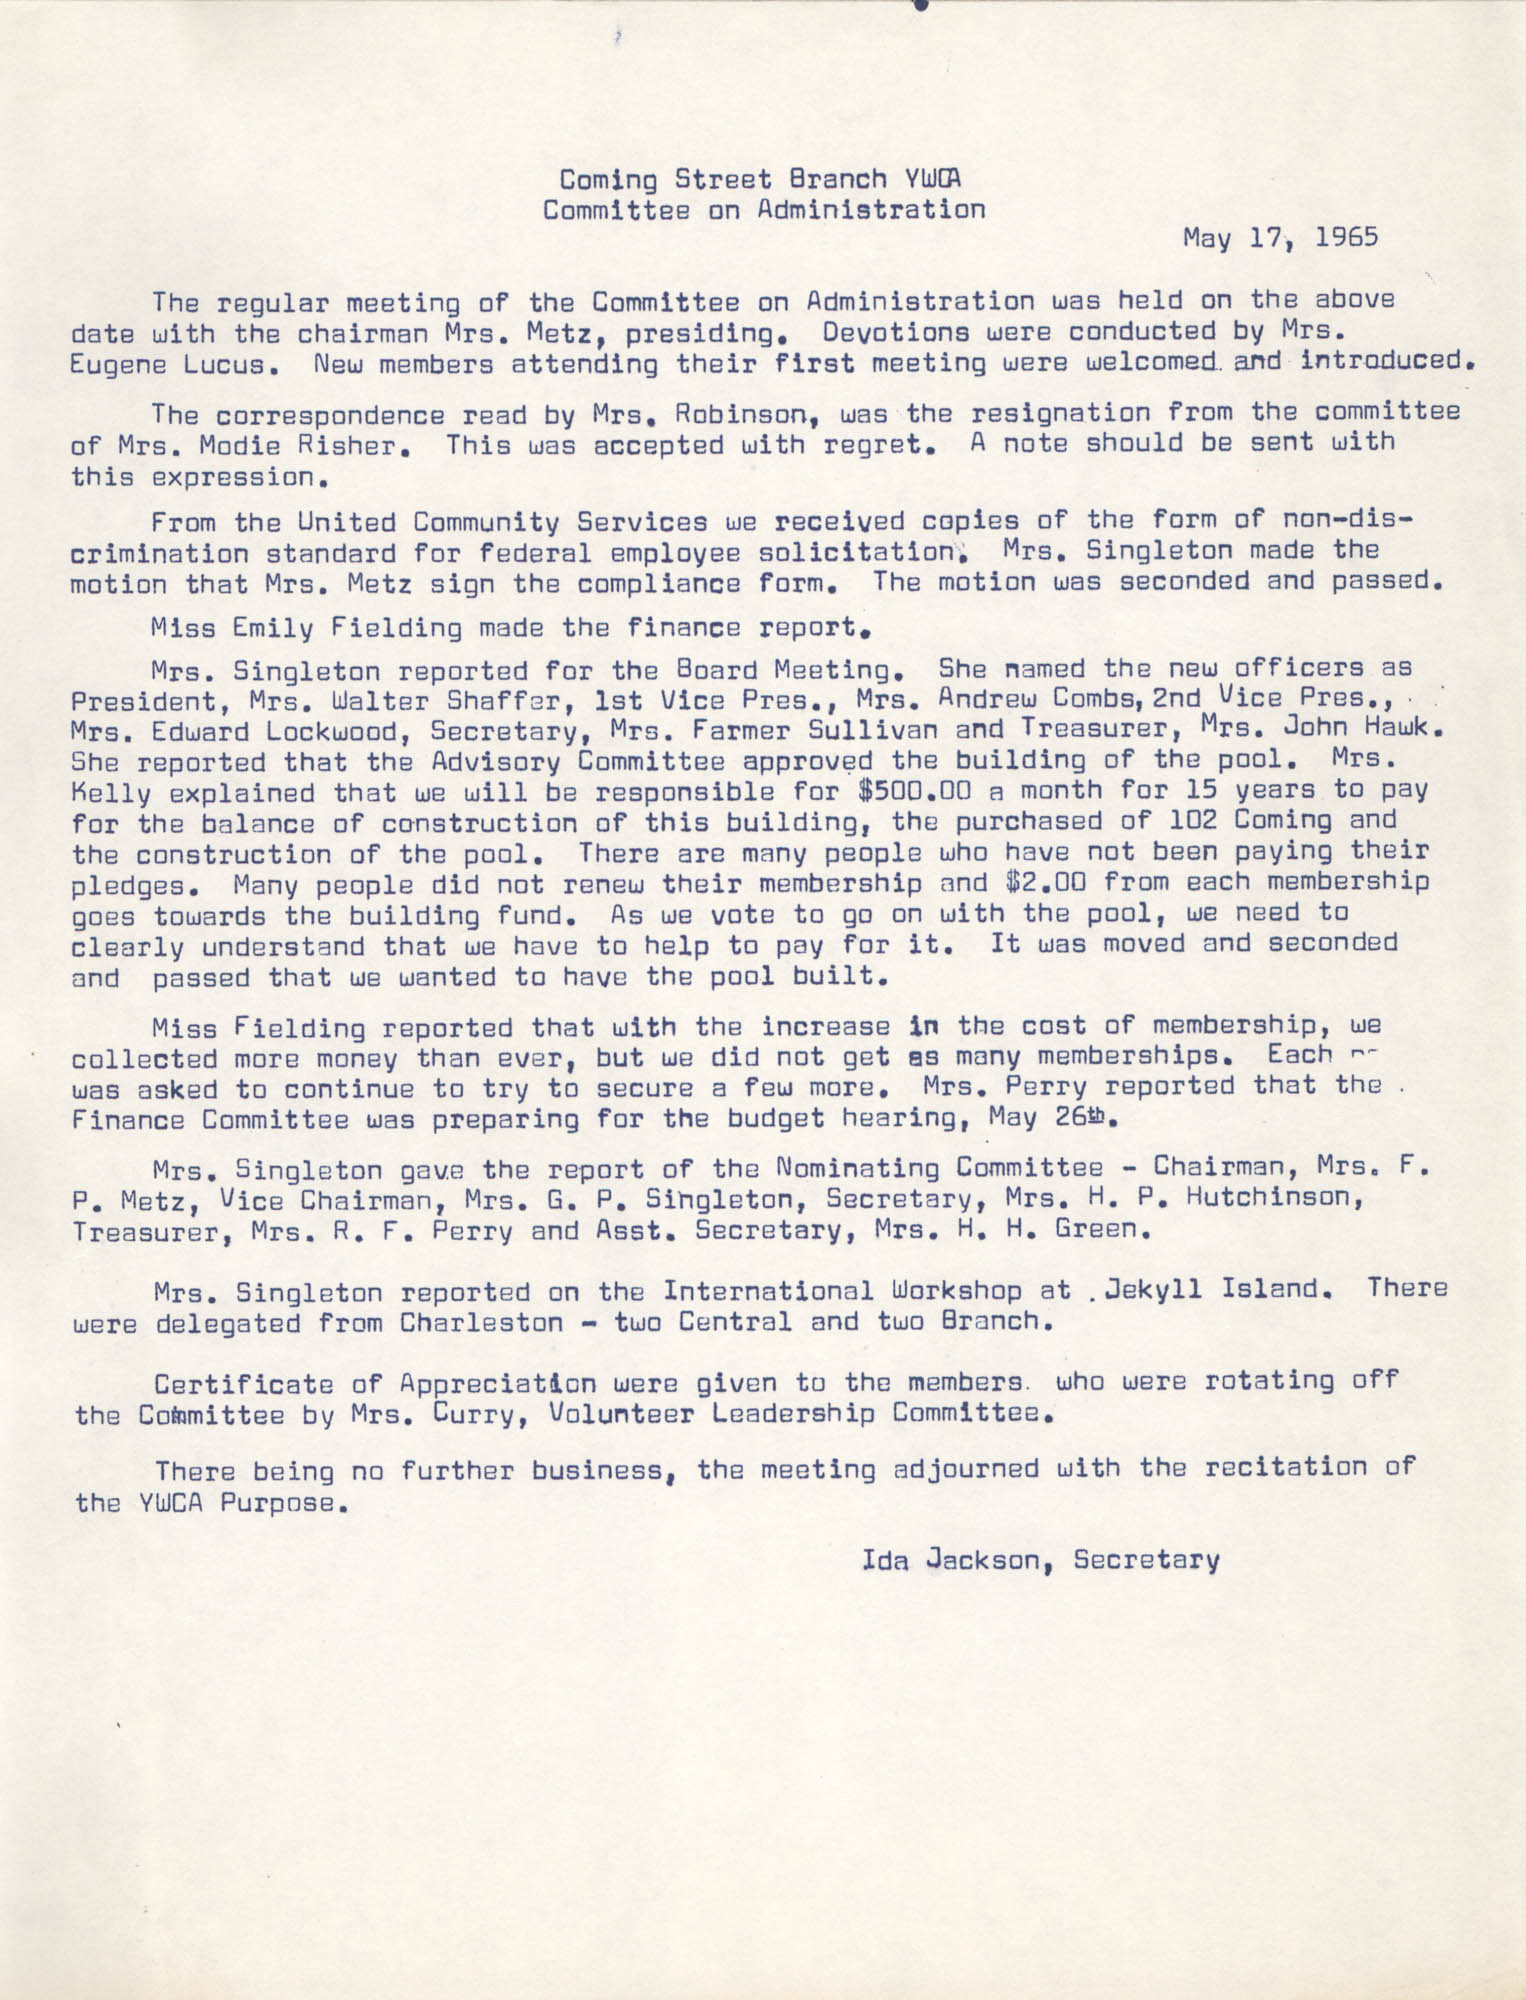 Minutes to the Committee on Administration, Coming Street Y.W.C.A., May 17, 1965